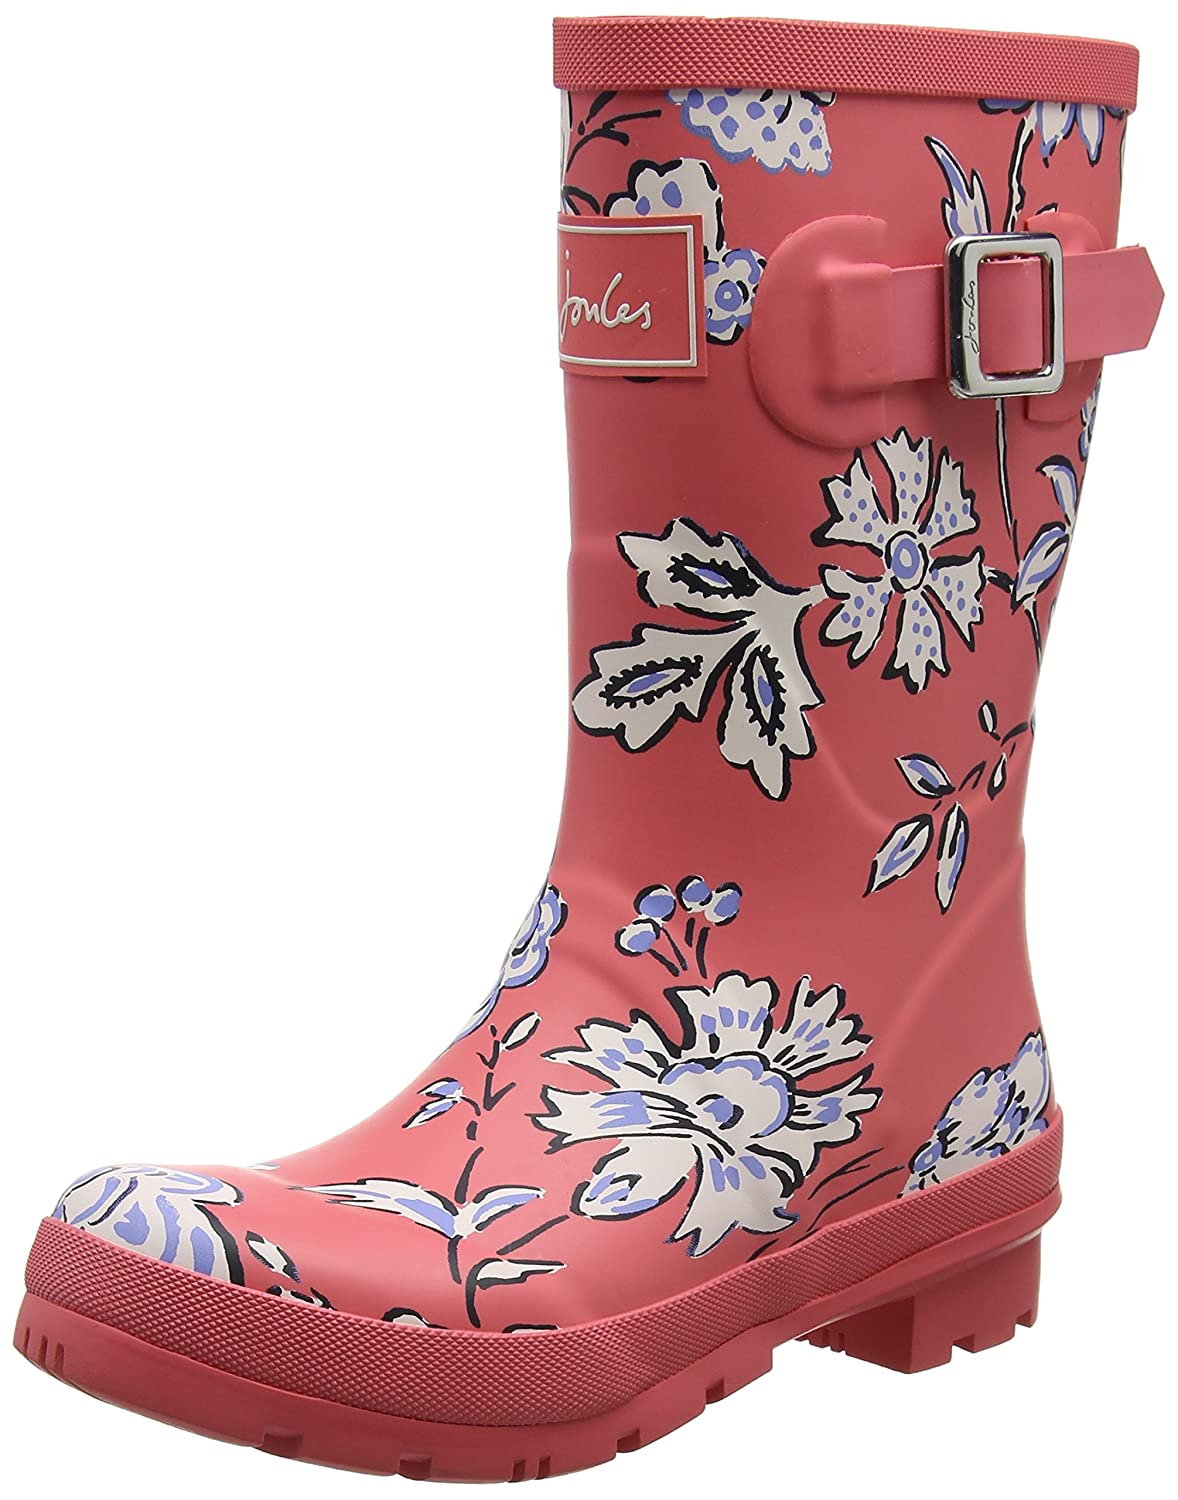 Joules Indienne Molly Welly, Bottes Bottines et Bottines B01FVP9B0I de Pluie Femme Rouge (Red Indienne Floral) a58109e - jessicalock.space